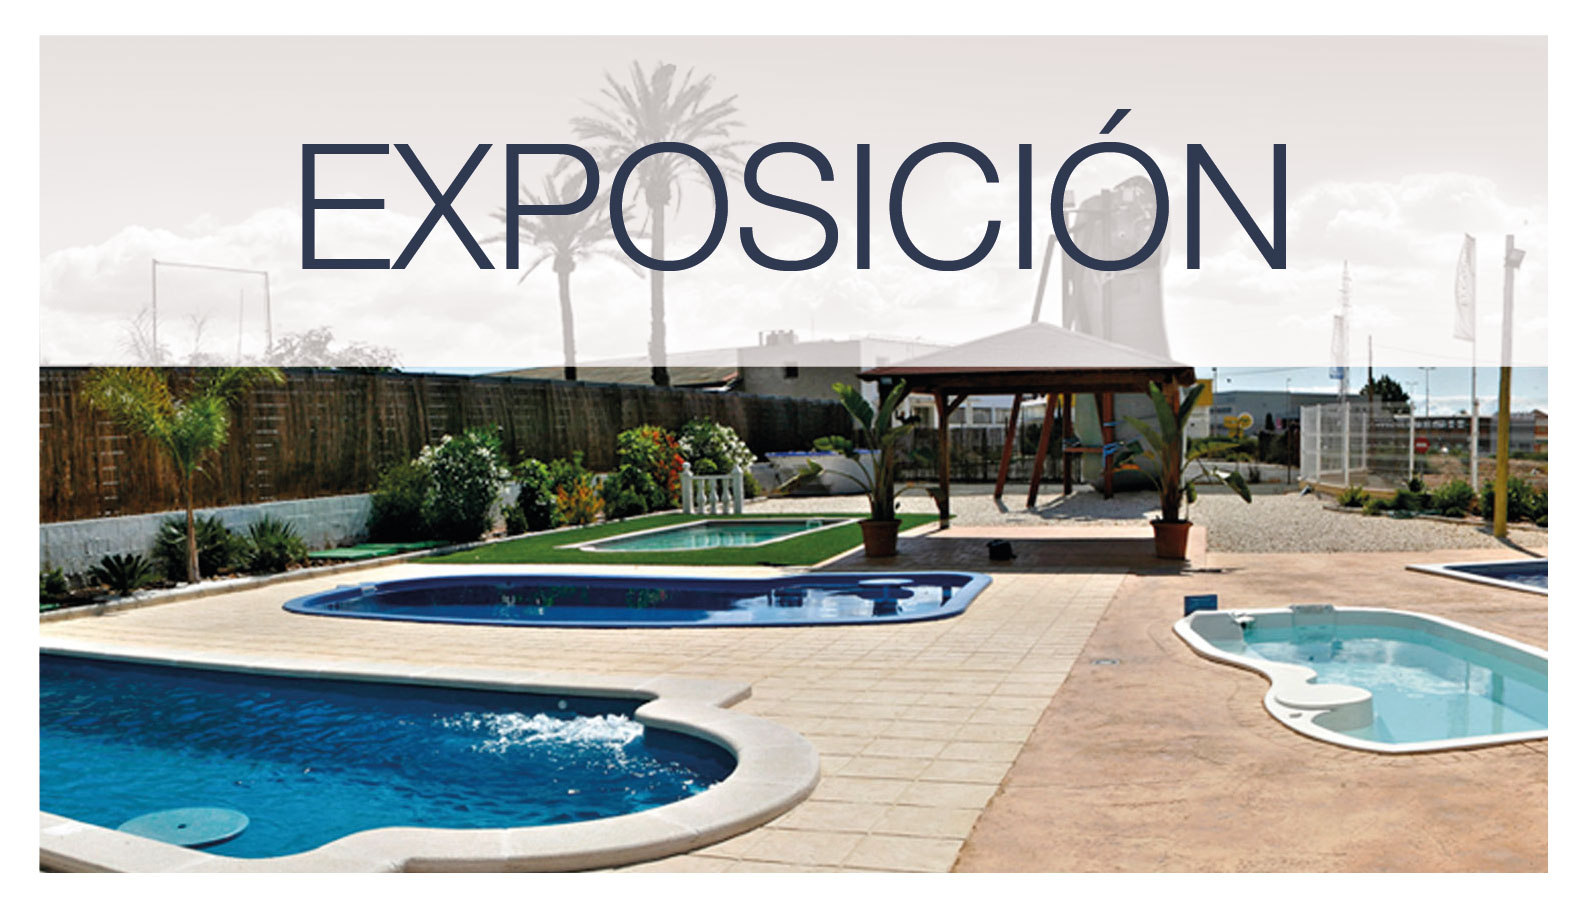 Exposición de Freedom Pools Center